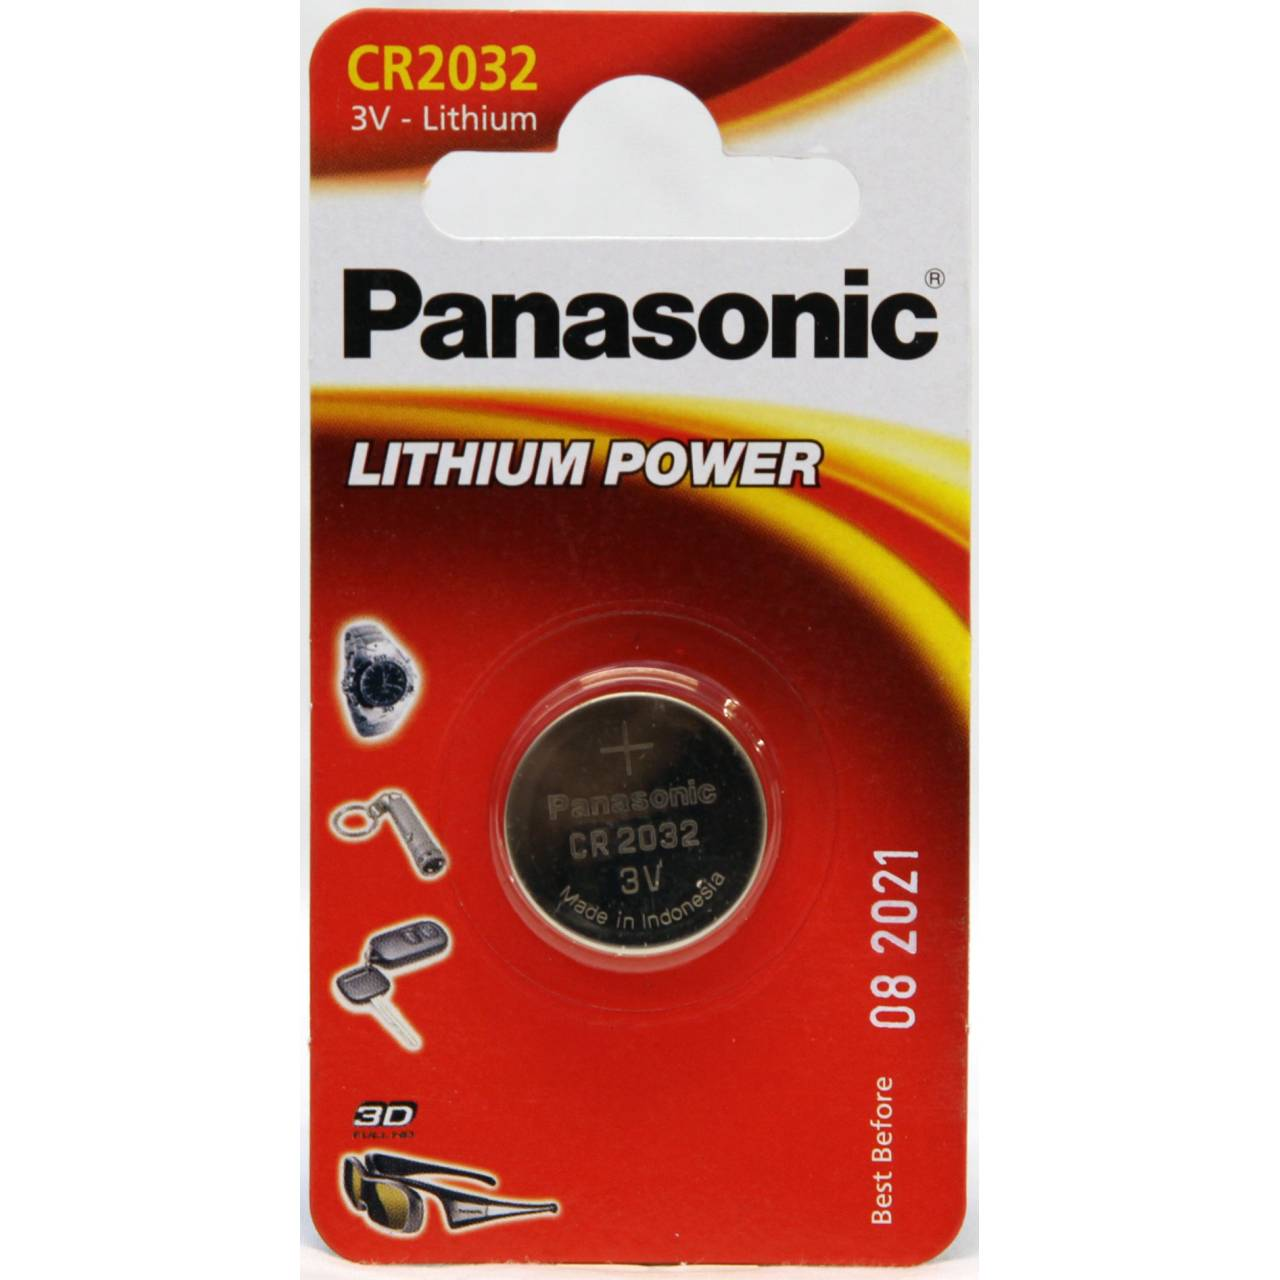 Battery 3V Lithium Panasonic Coin Cell - CR2032 Pack Of 1